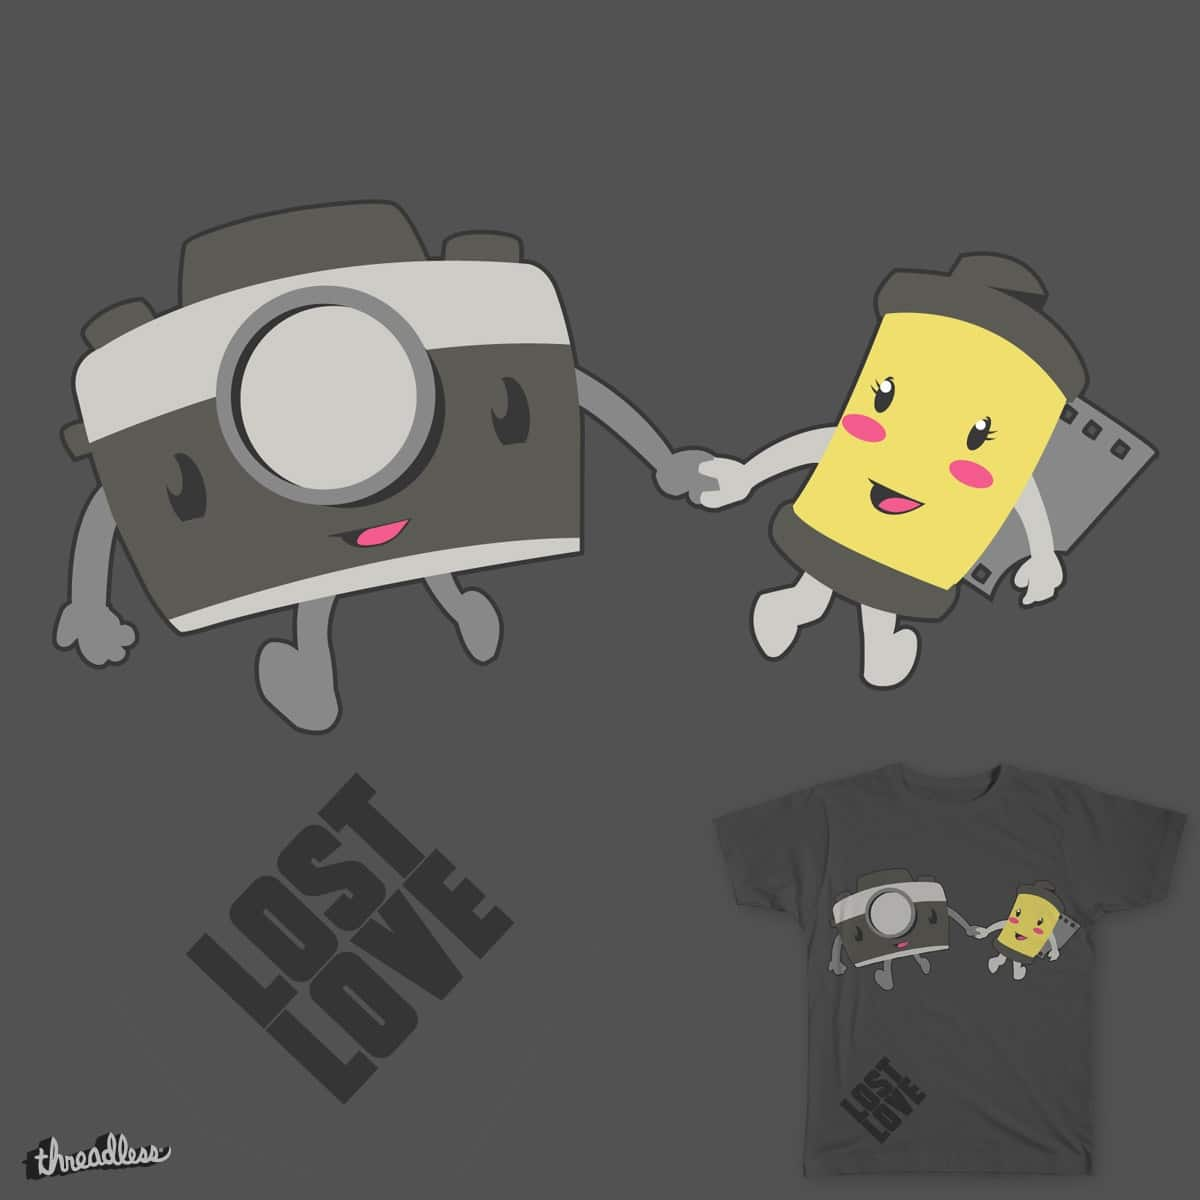 Lost Love by Sokisoy on Threadless